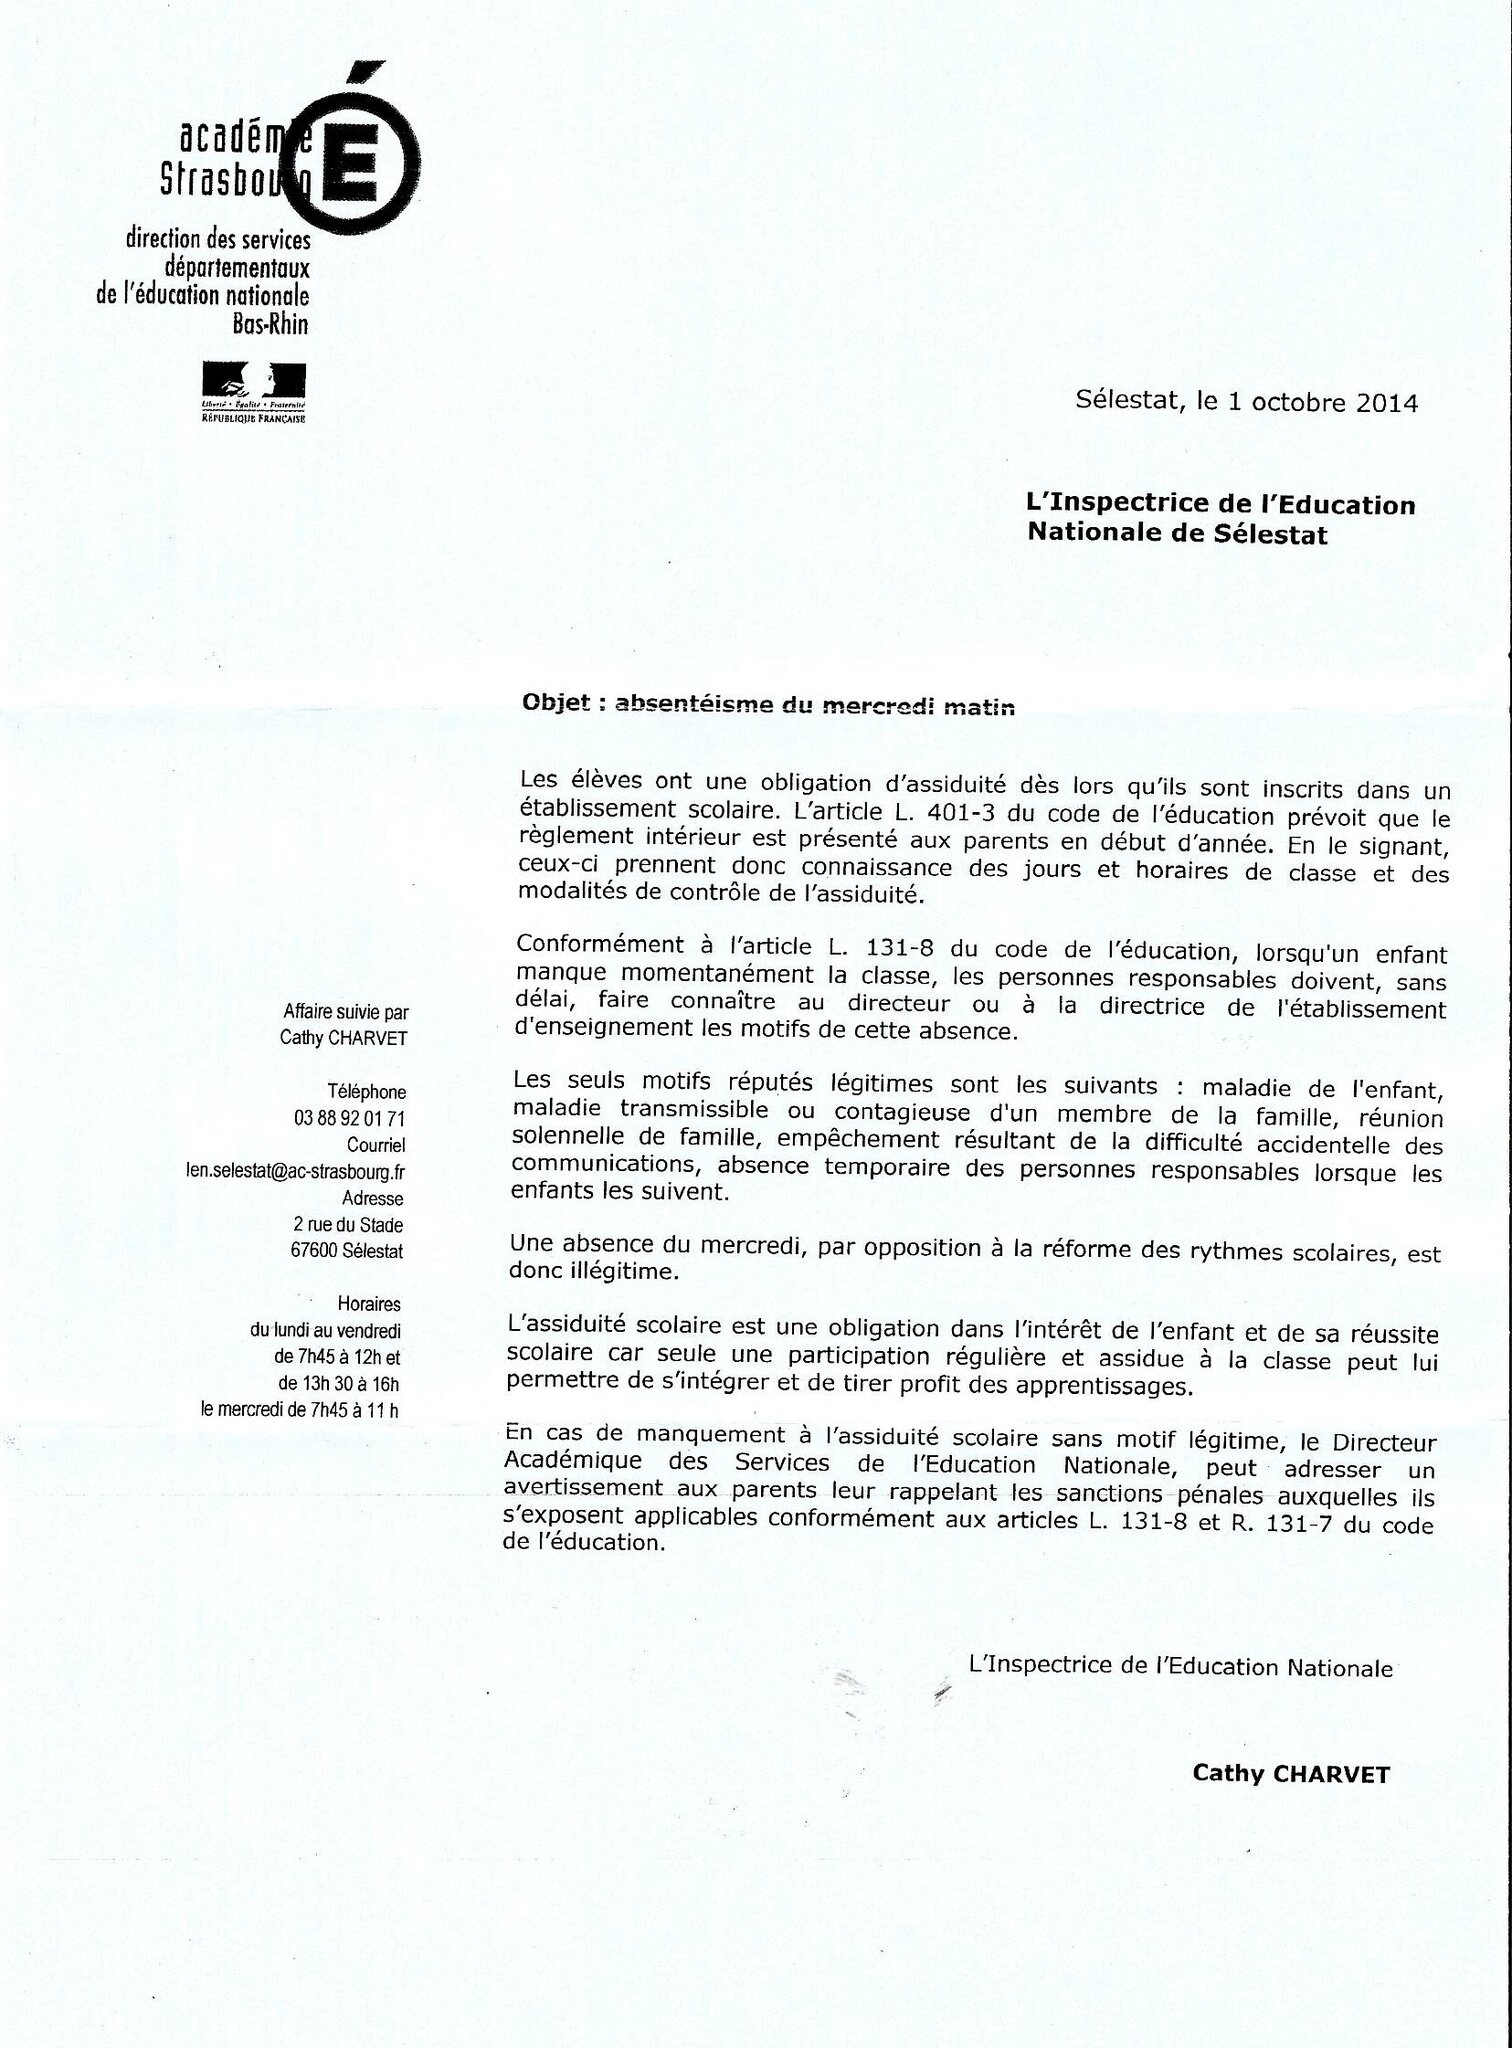 Modele lettre inspecteur education nationale document online for Exemple de reglement interieur entreprise